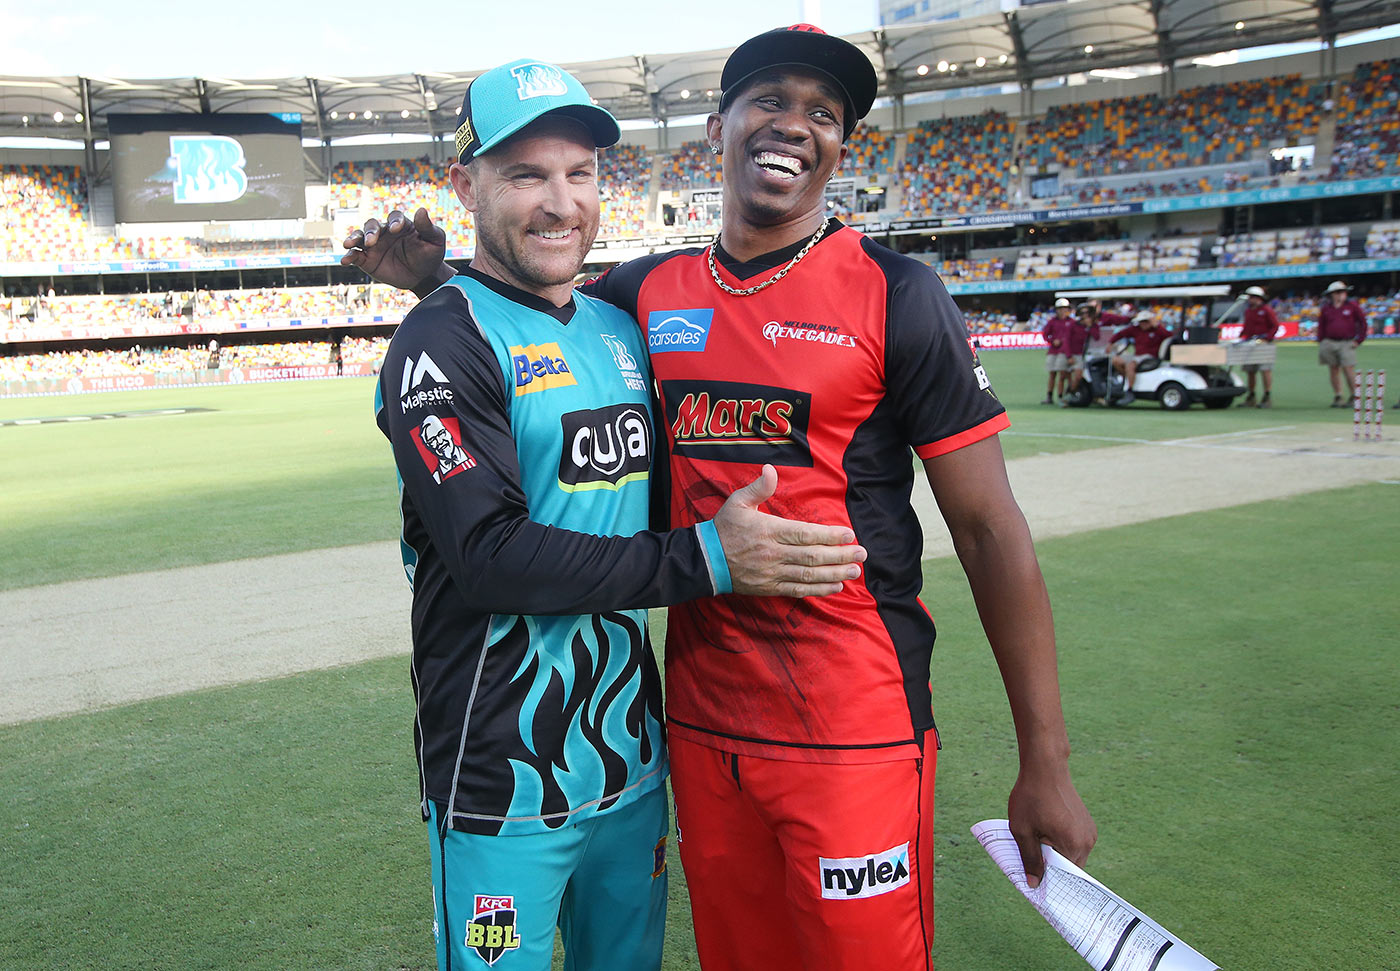 Same opponent, different day: the likes of Bravo and Brendon McCullum run into each other fairly frequently on the T20 circuit